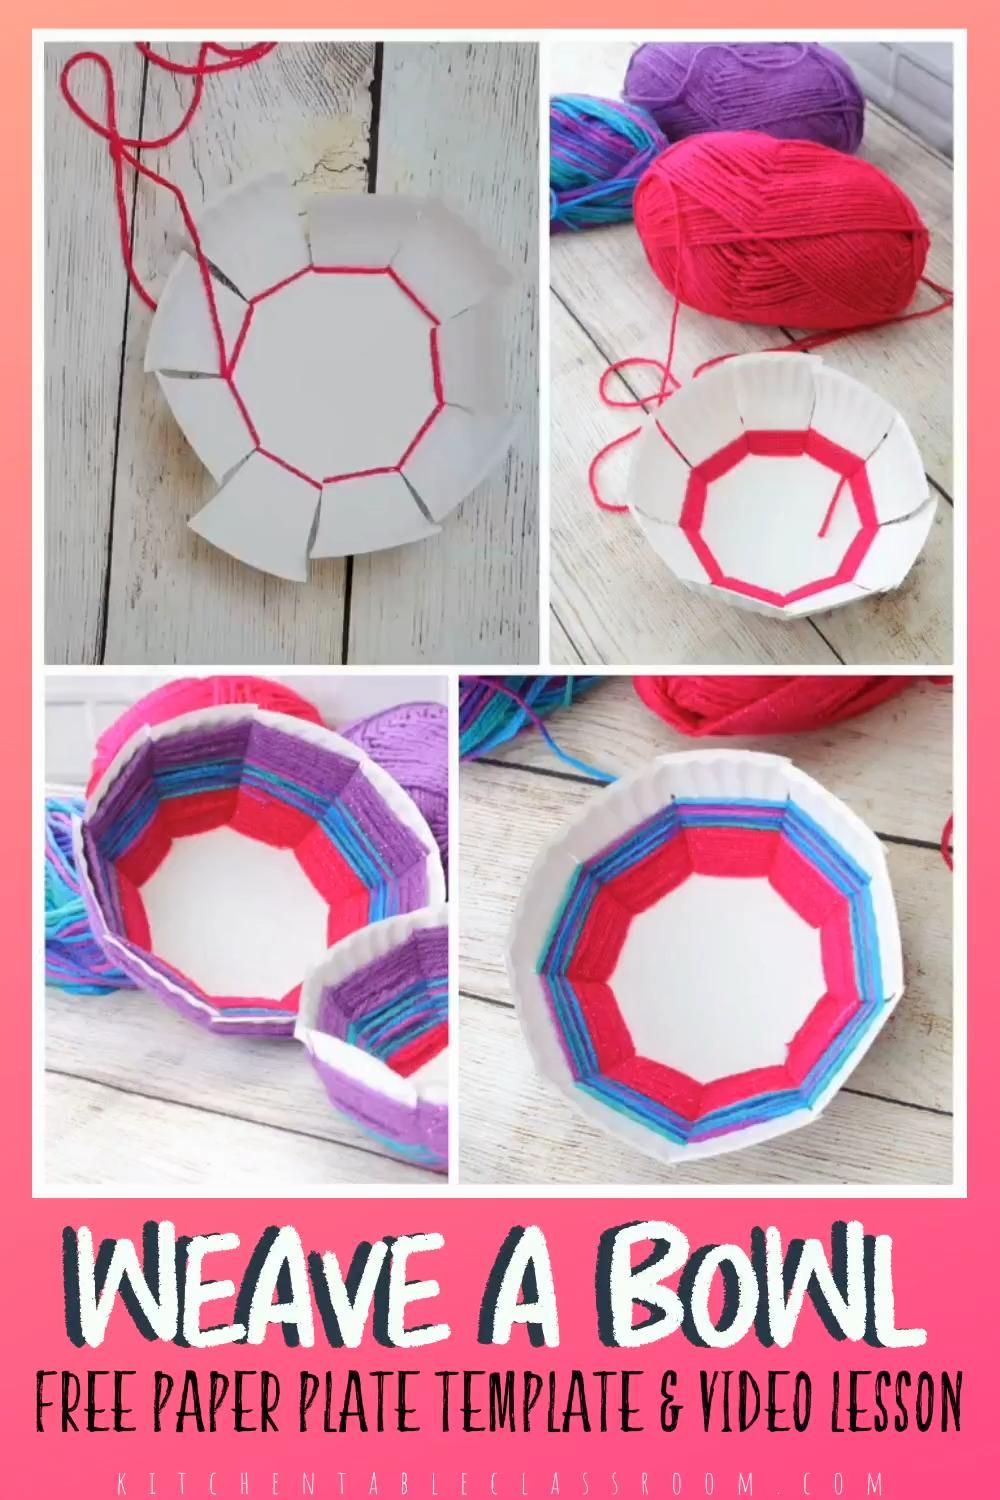 Use my free printable template to turn your paper plate into a woven bowl while you practice basic weaving skills.  Free video art lesson included in the post. #weavingforkids